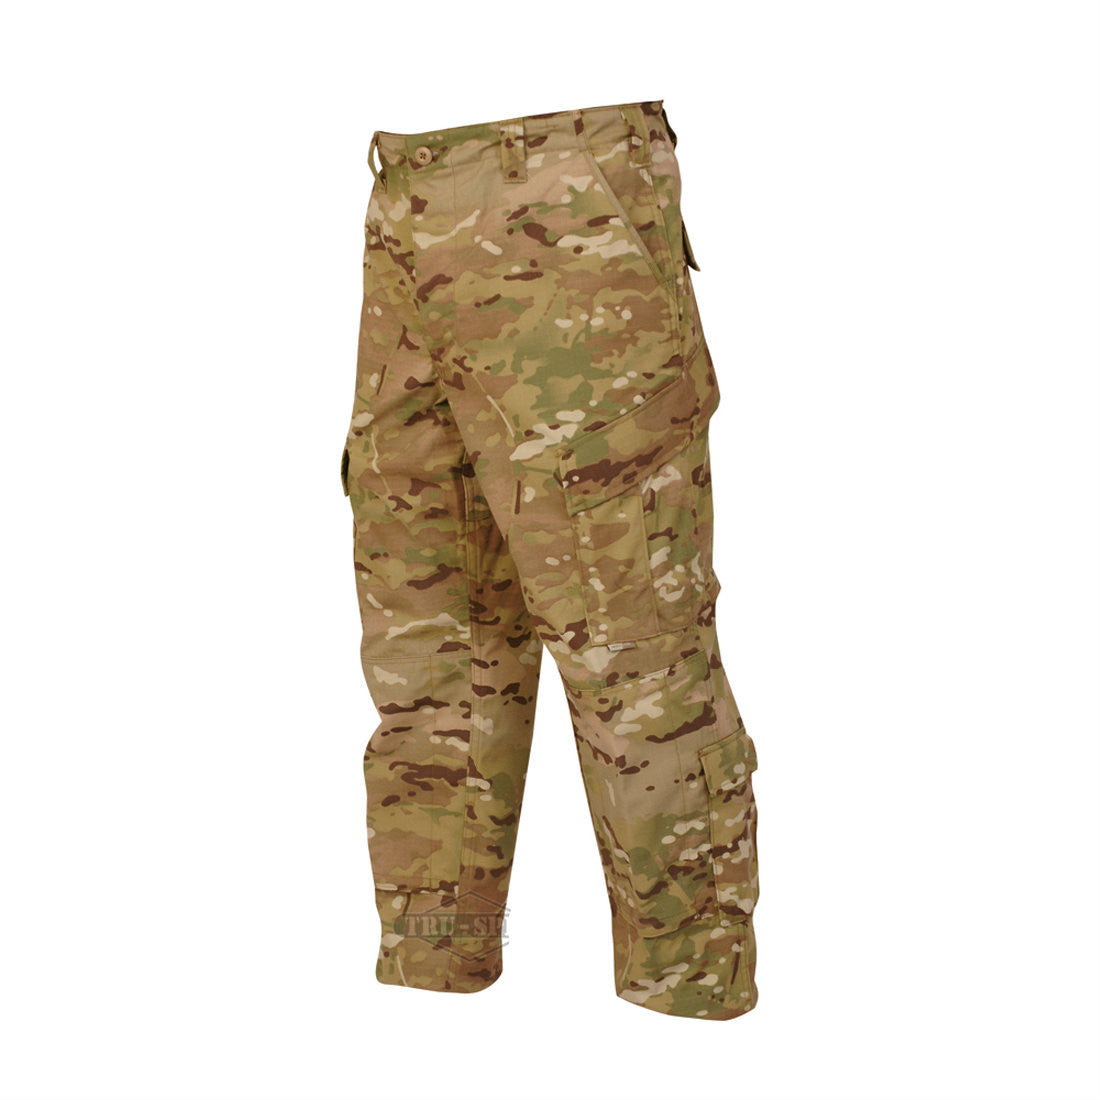 Tru-Spec Multicam Tactical Response Uniform Pants - Indy Army Navy